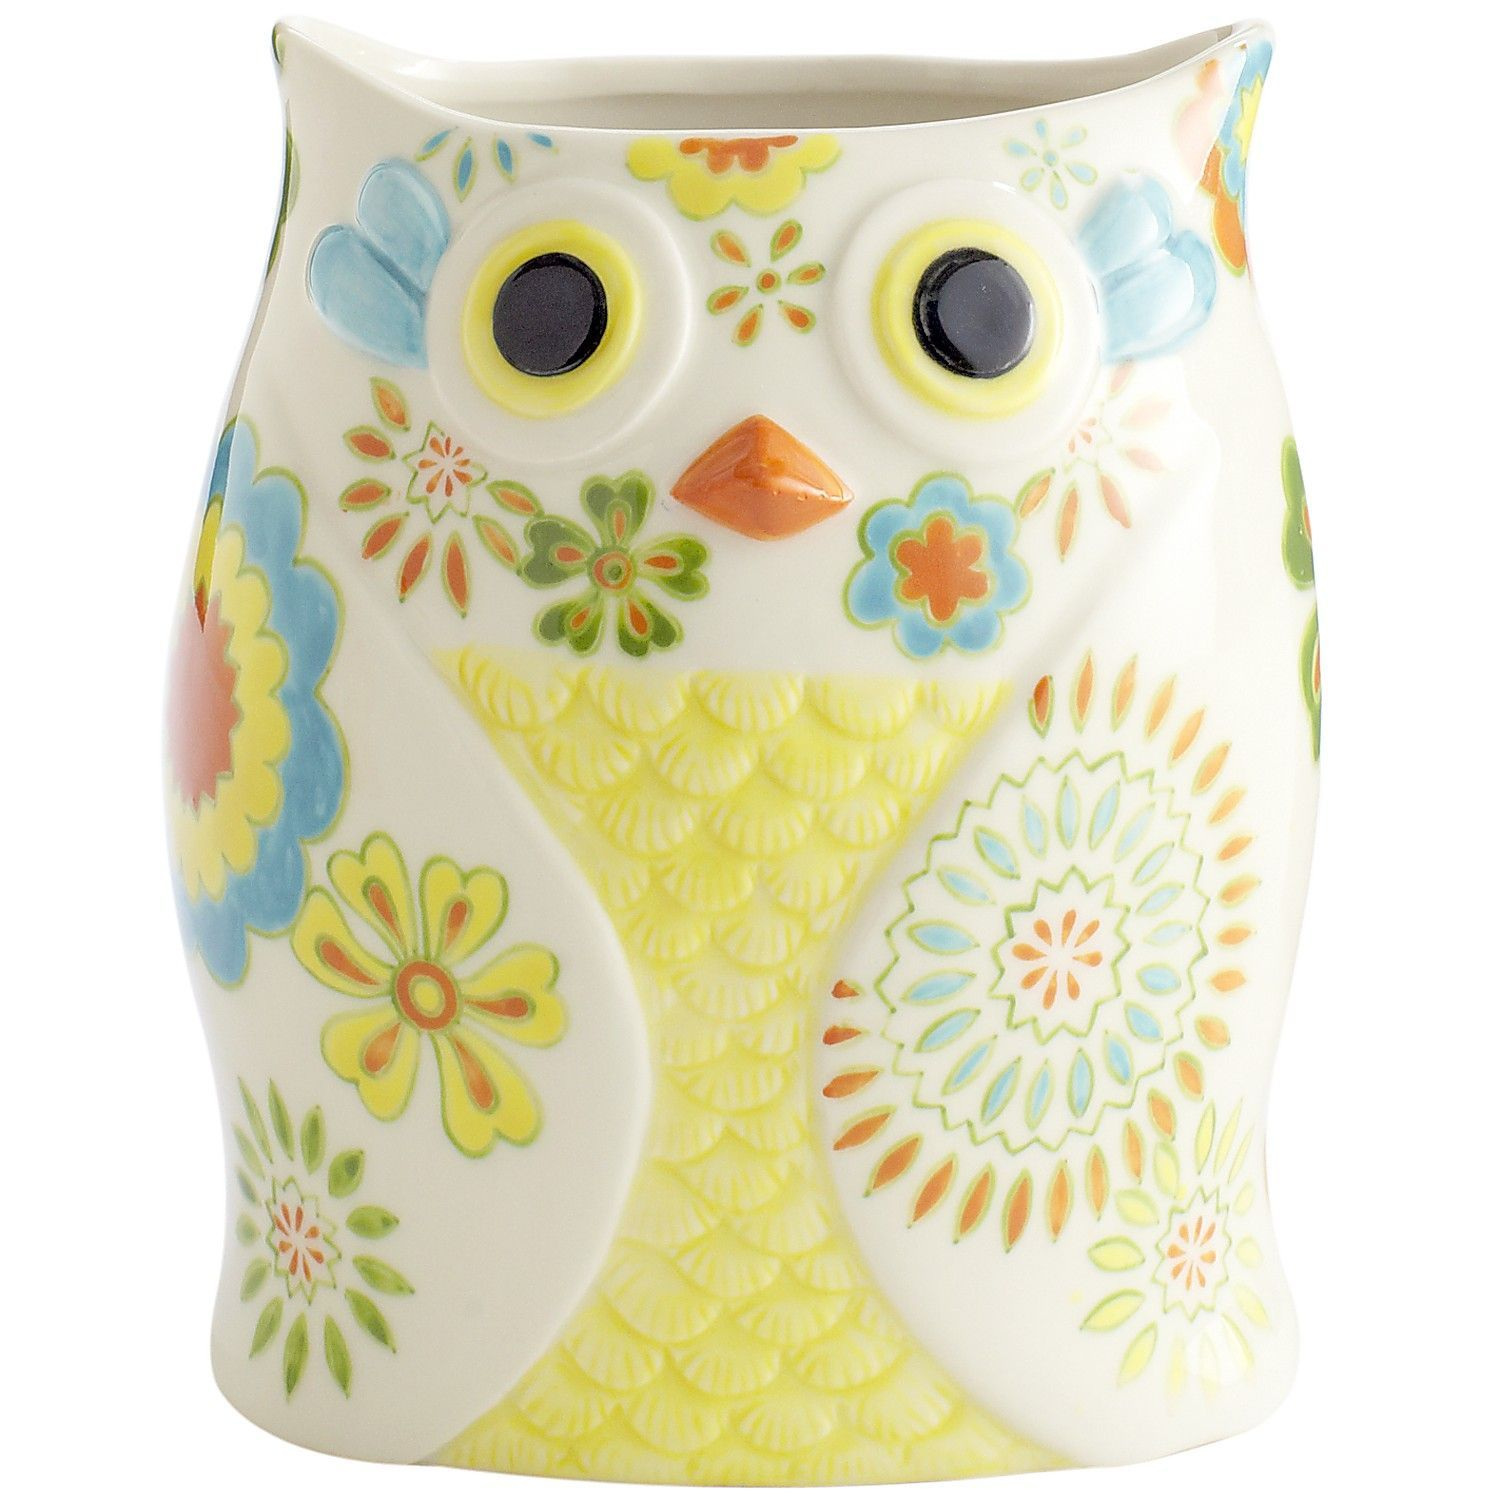 Owl Utensil Holder | Pier 1 Imports | Dream Home - Accessories ...